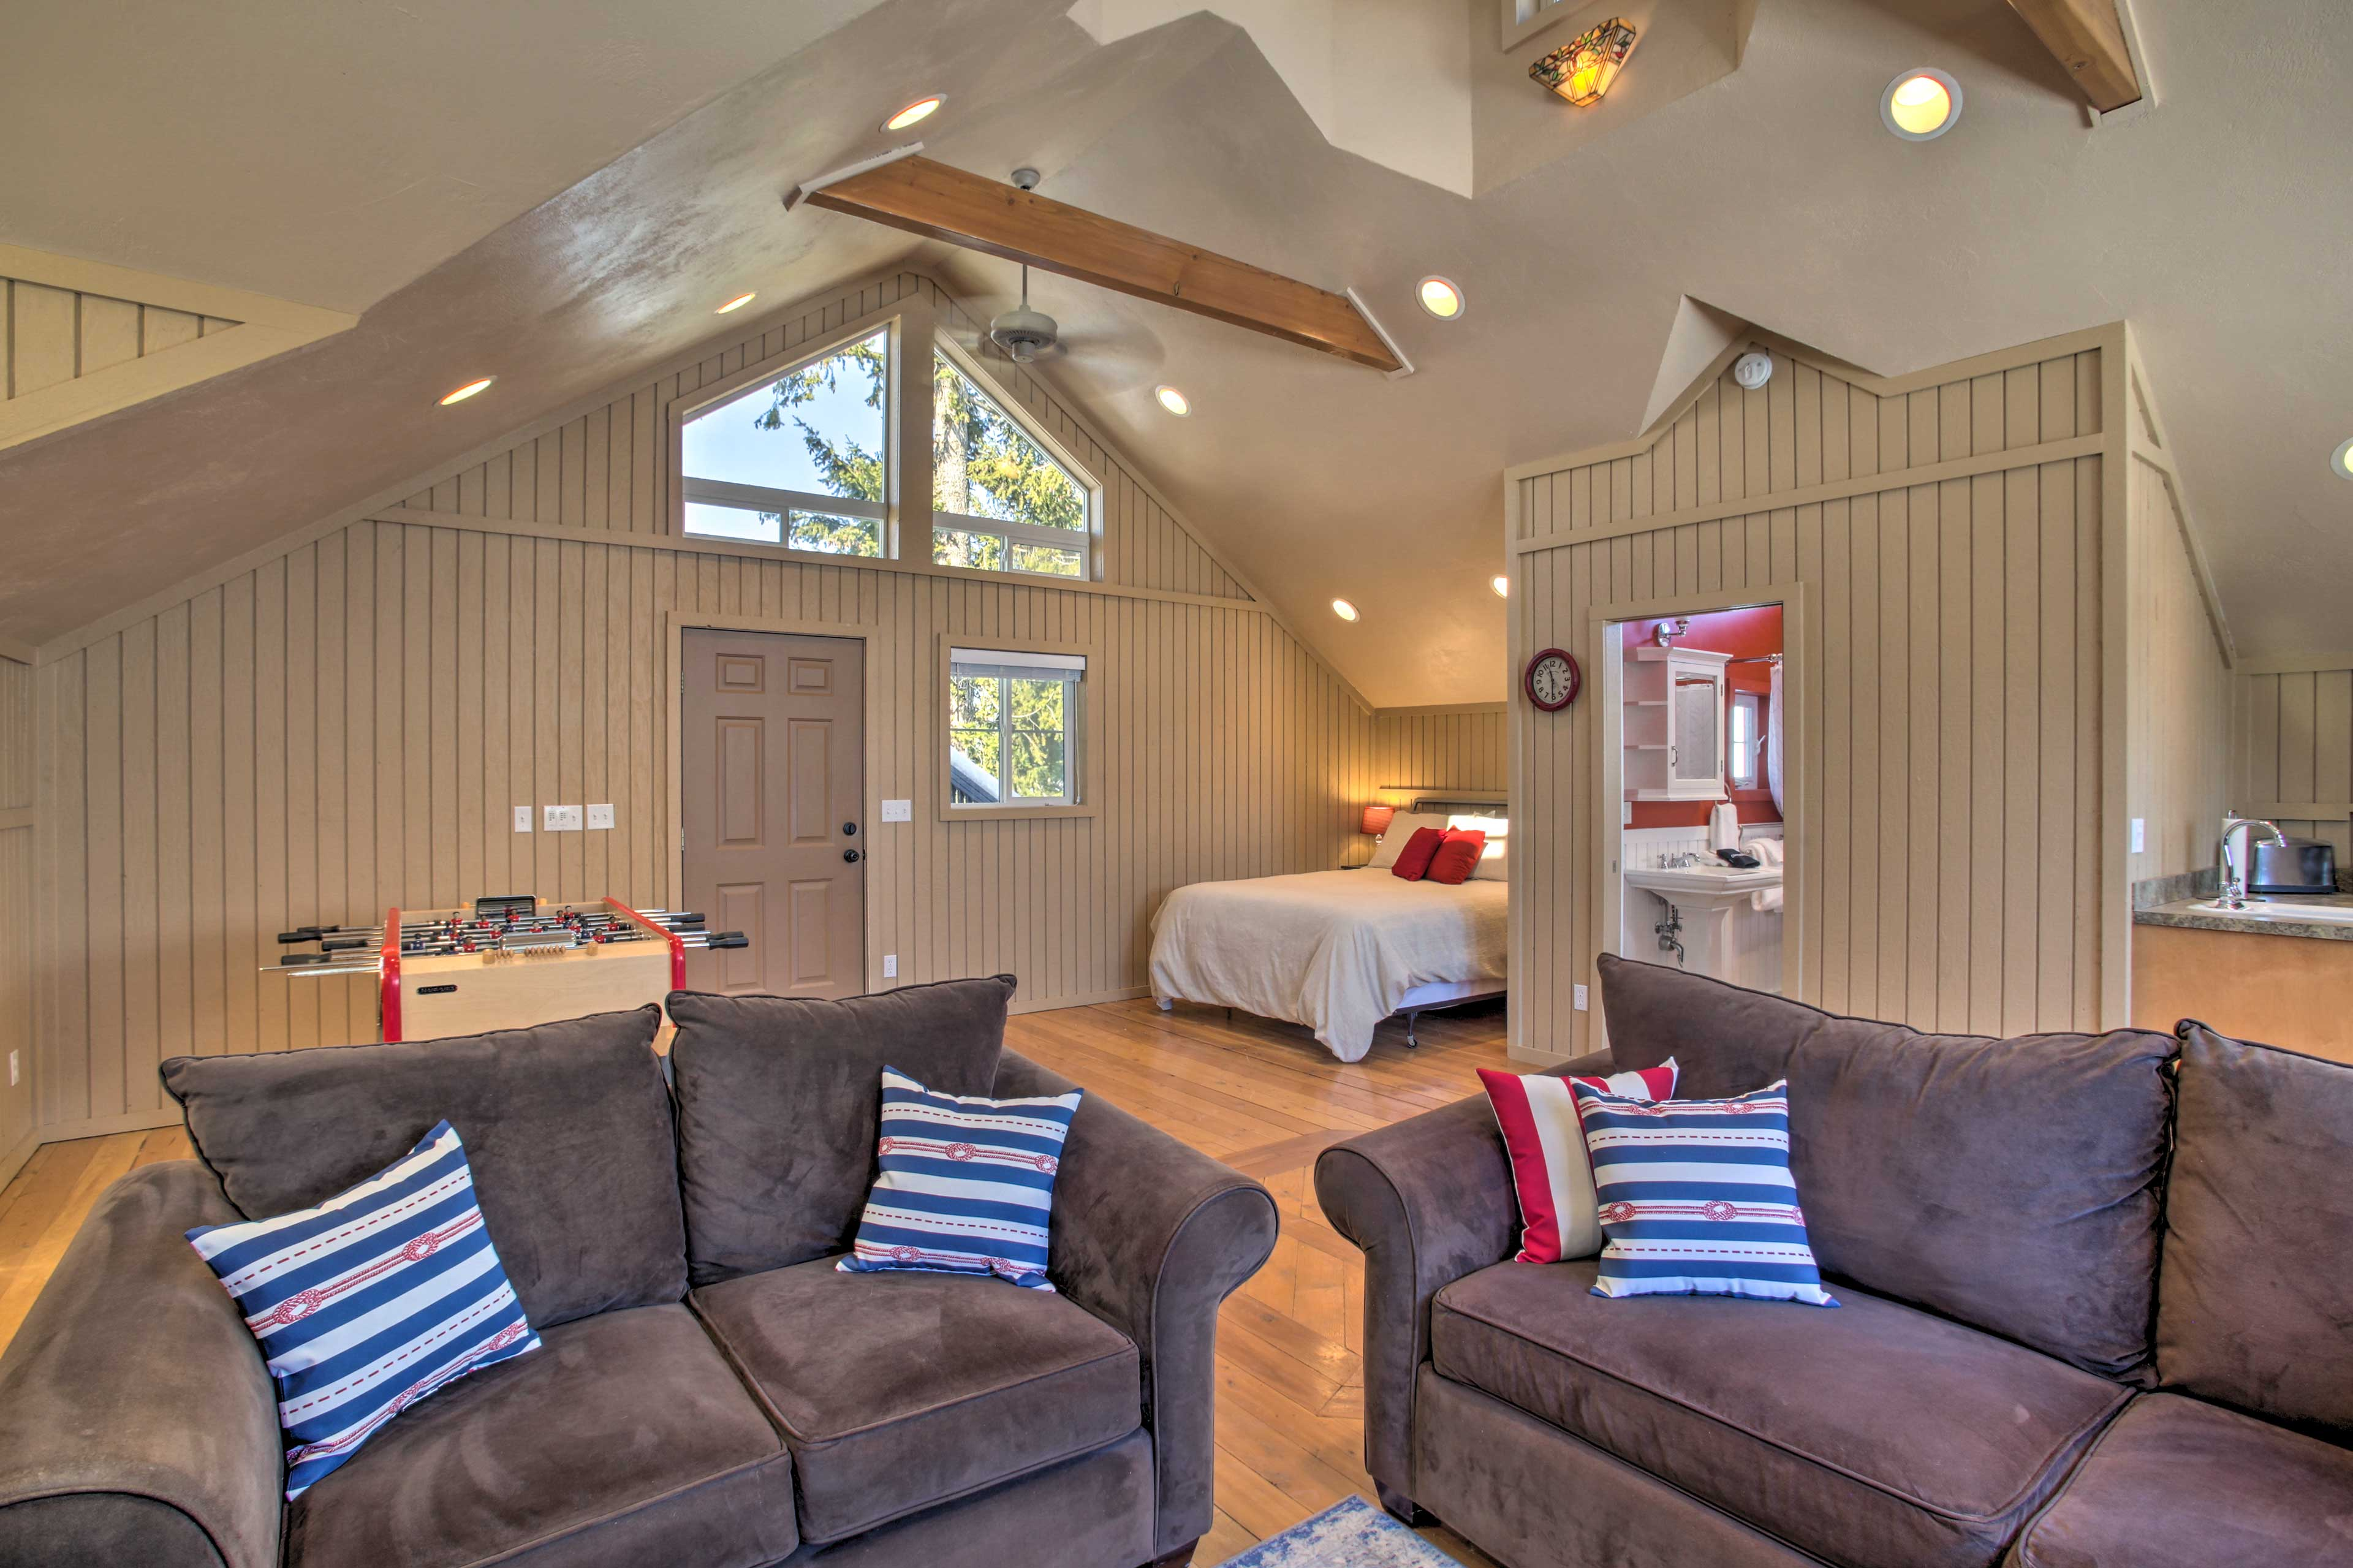 The space accommodates up to 4 travelers.